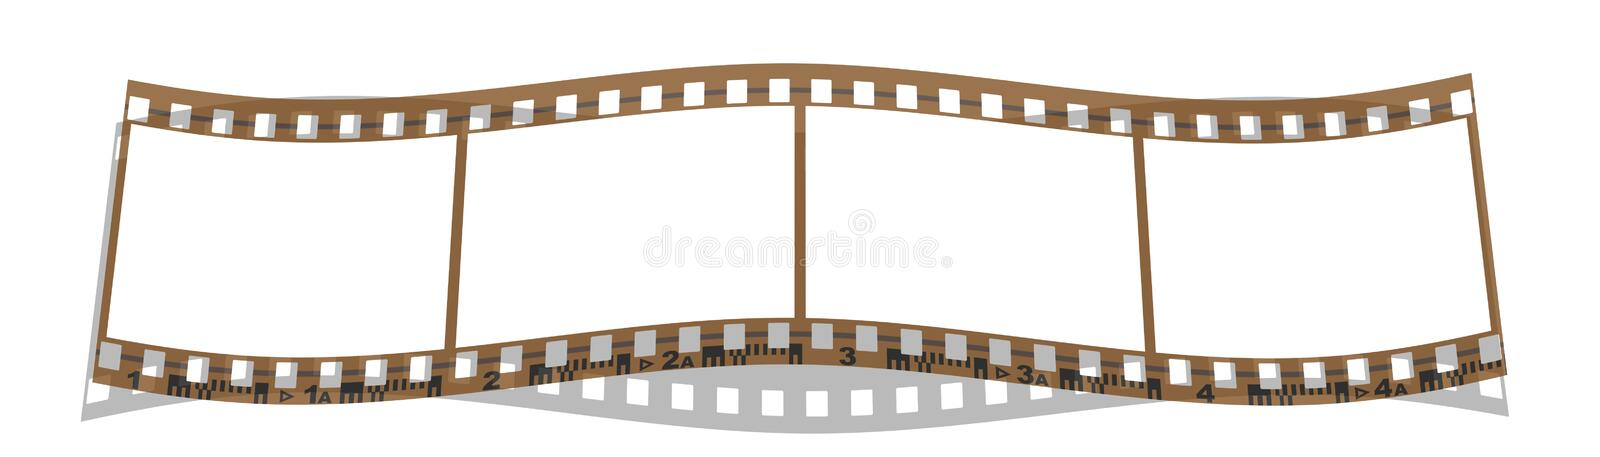 Strook 4 Van De Film Frames Stock Illustratie - Illustratie ...